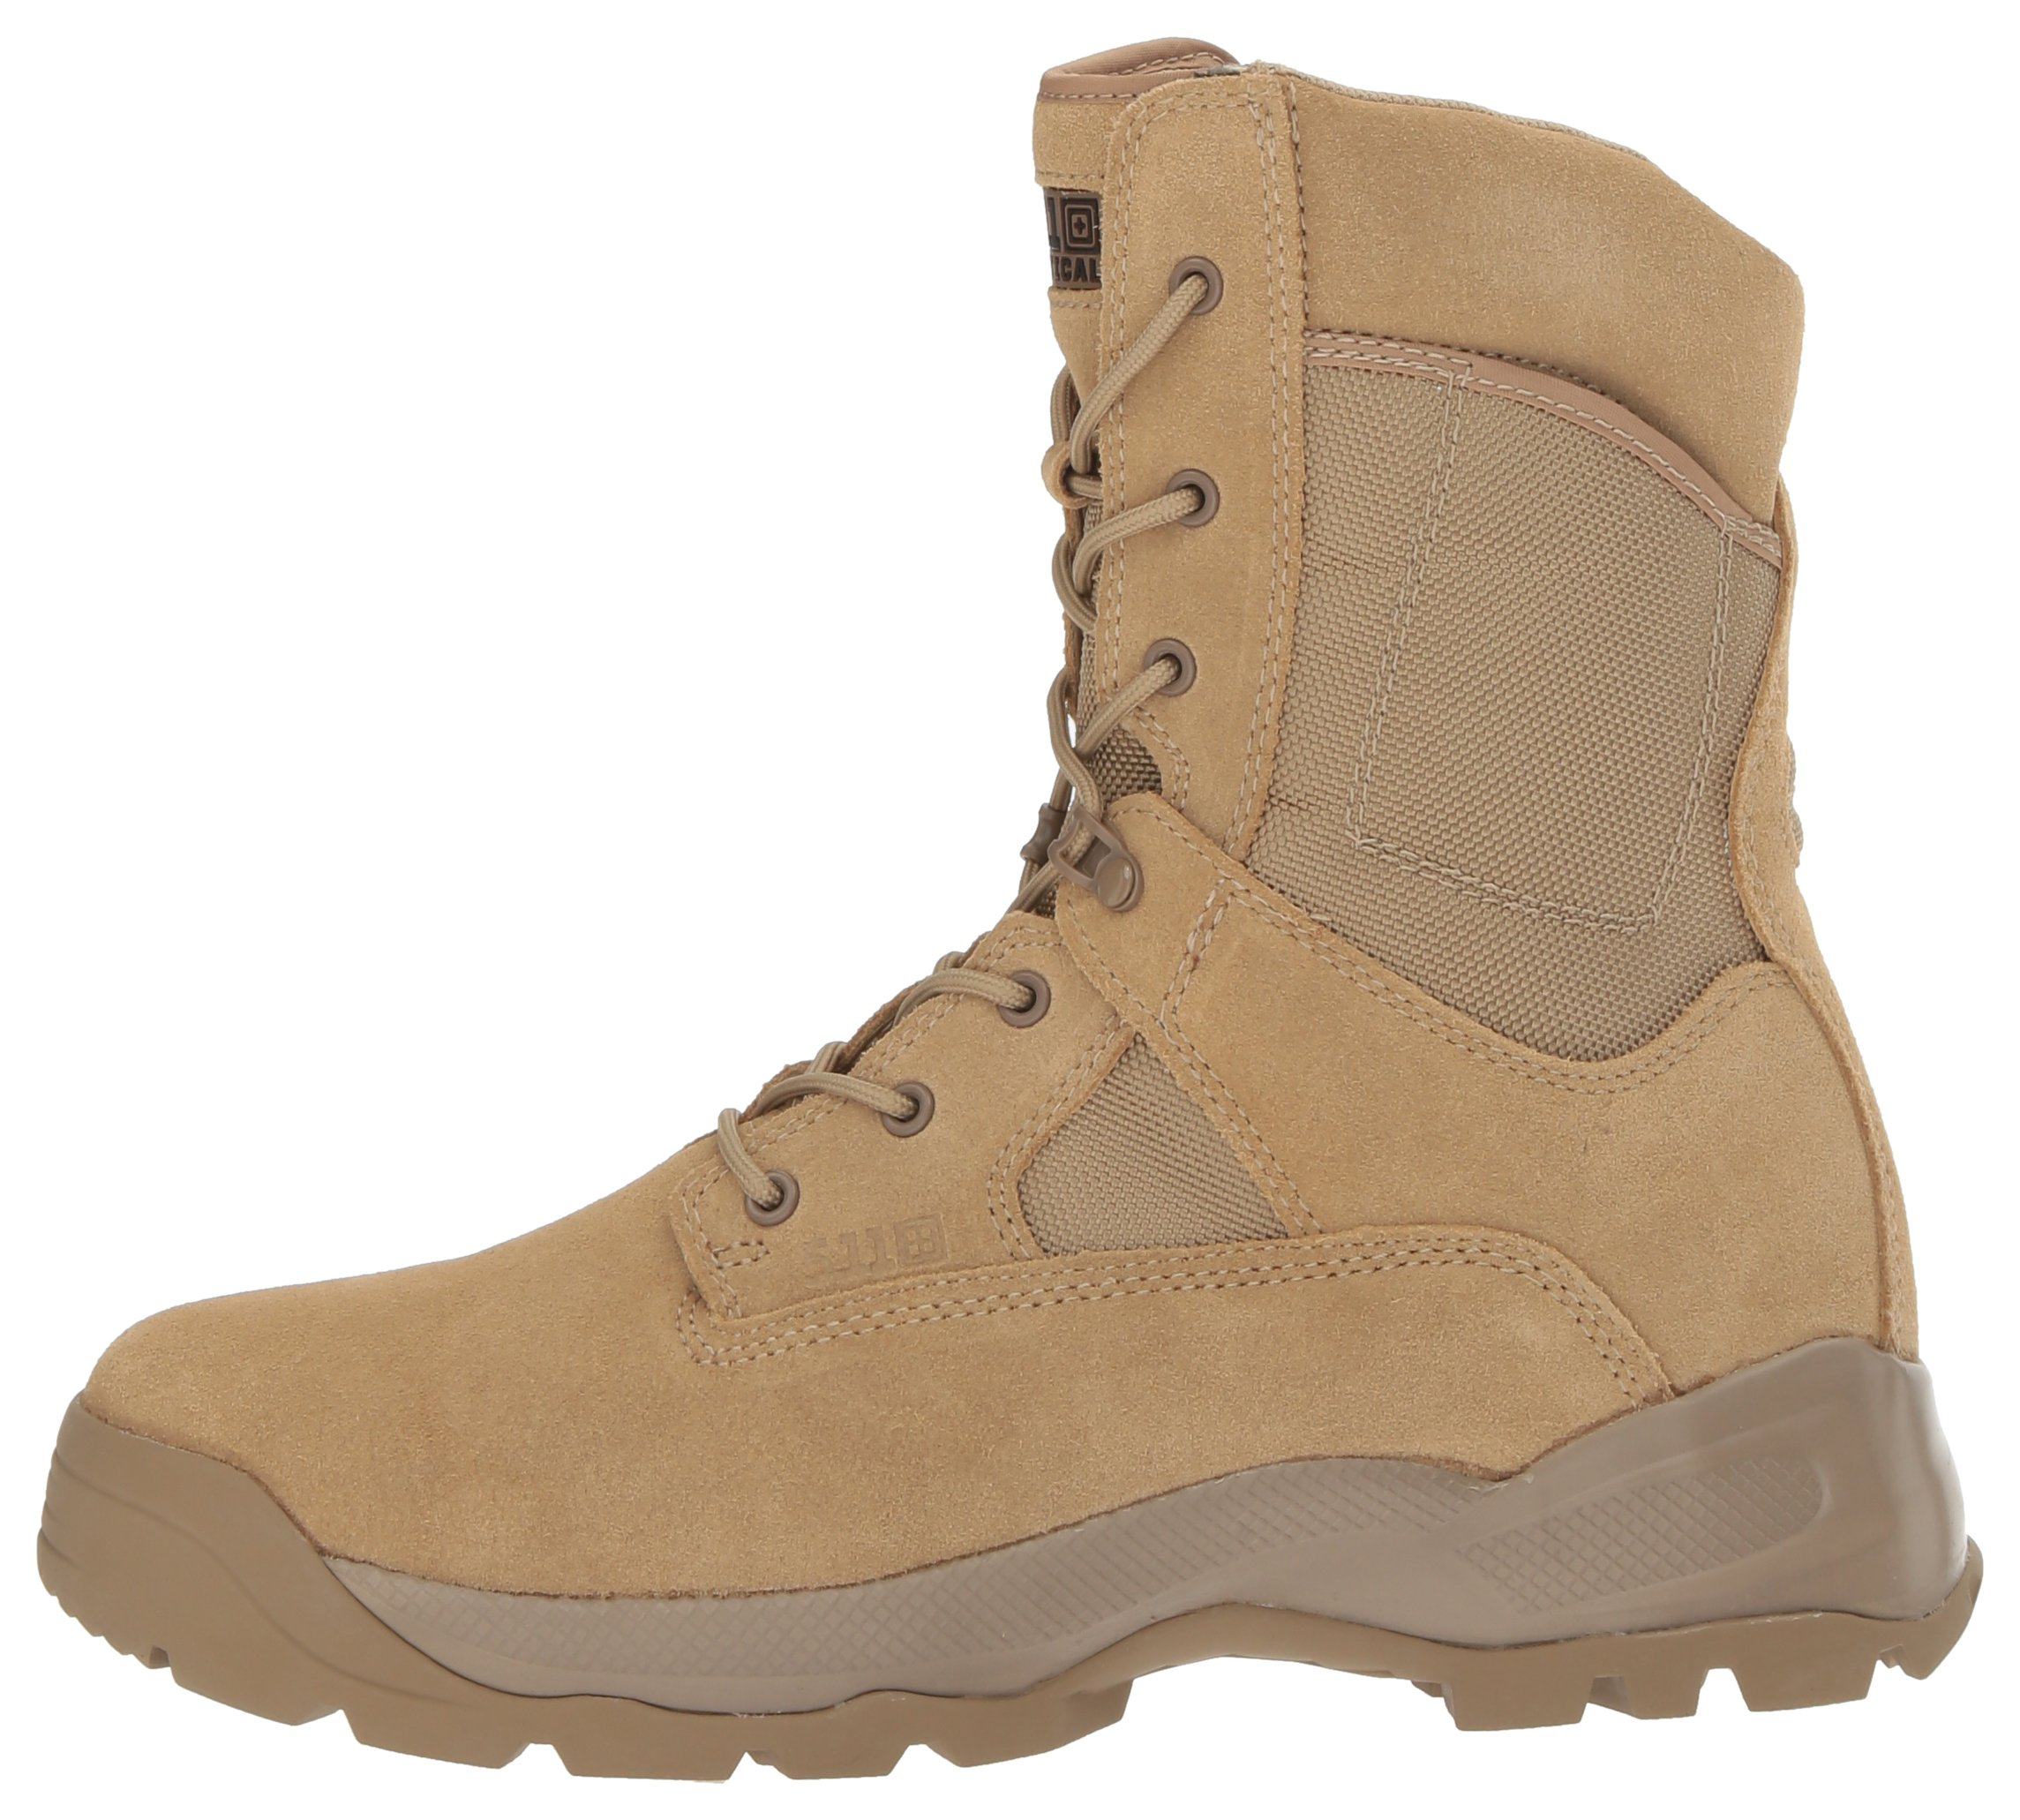 5.11 Atac 8In Boot-U, Coyote Brown, 11 D(M) US by 5.11 (Image #5)